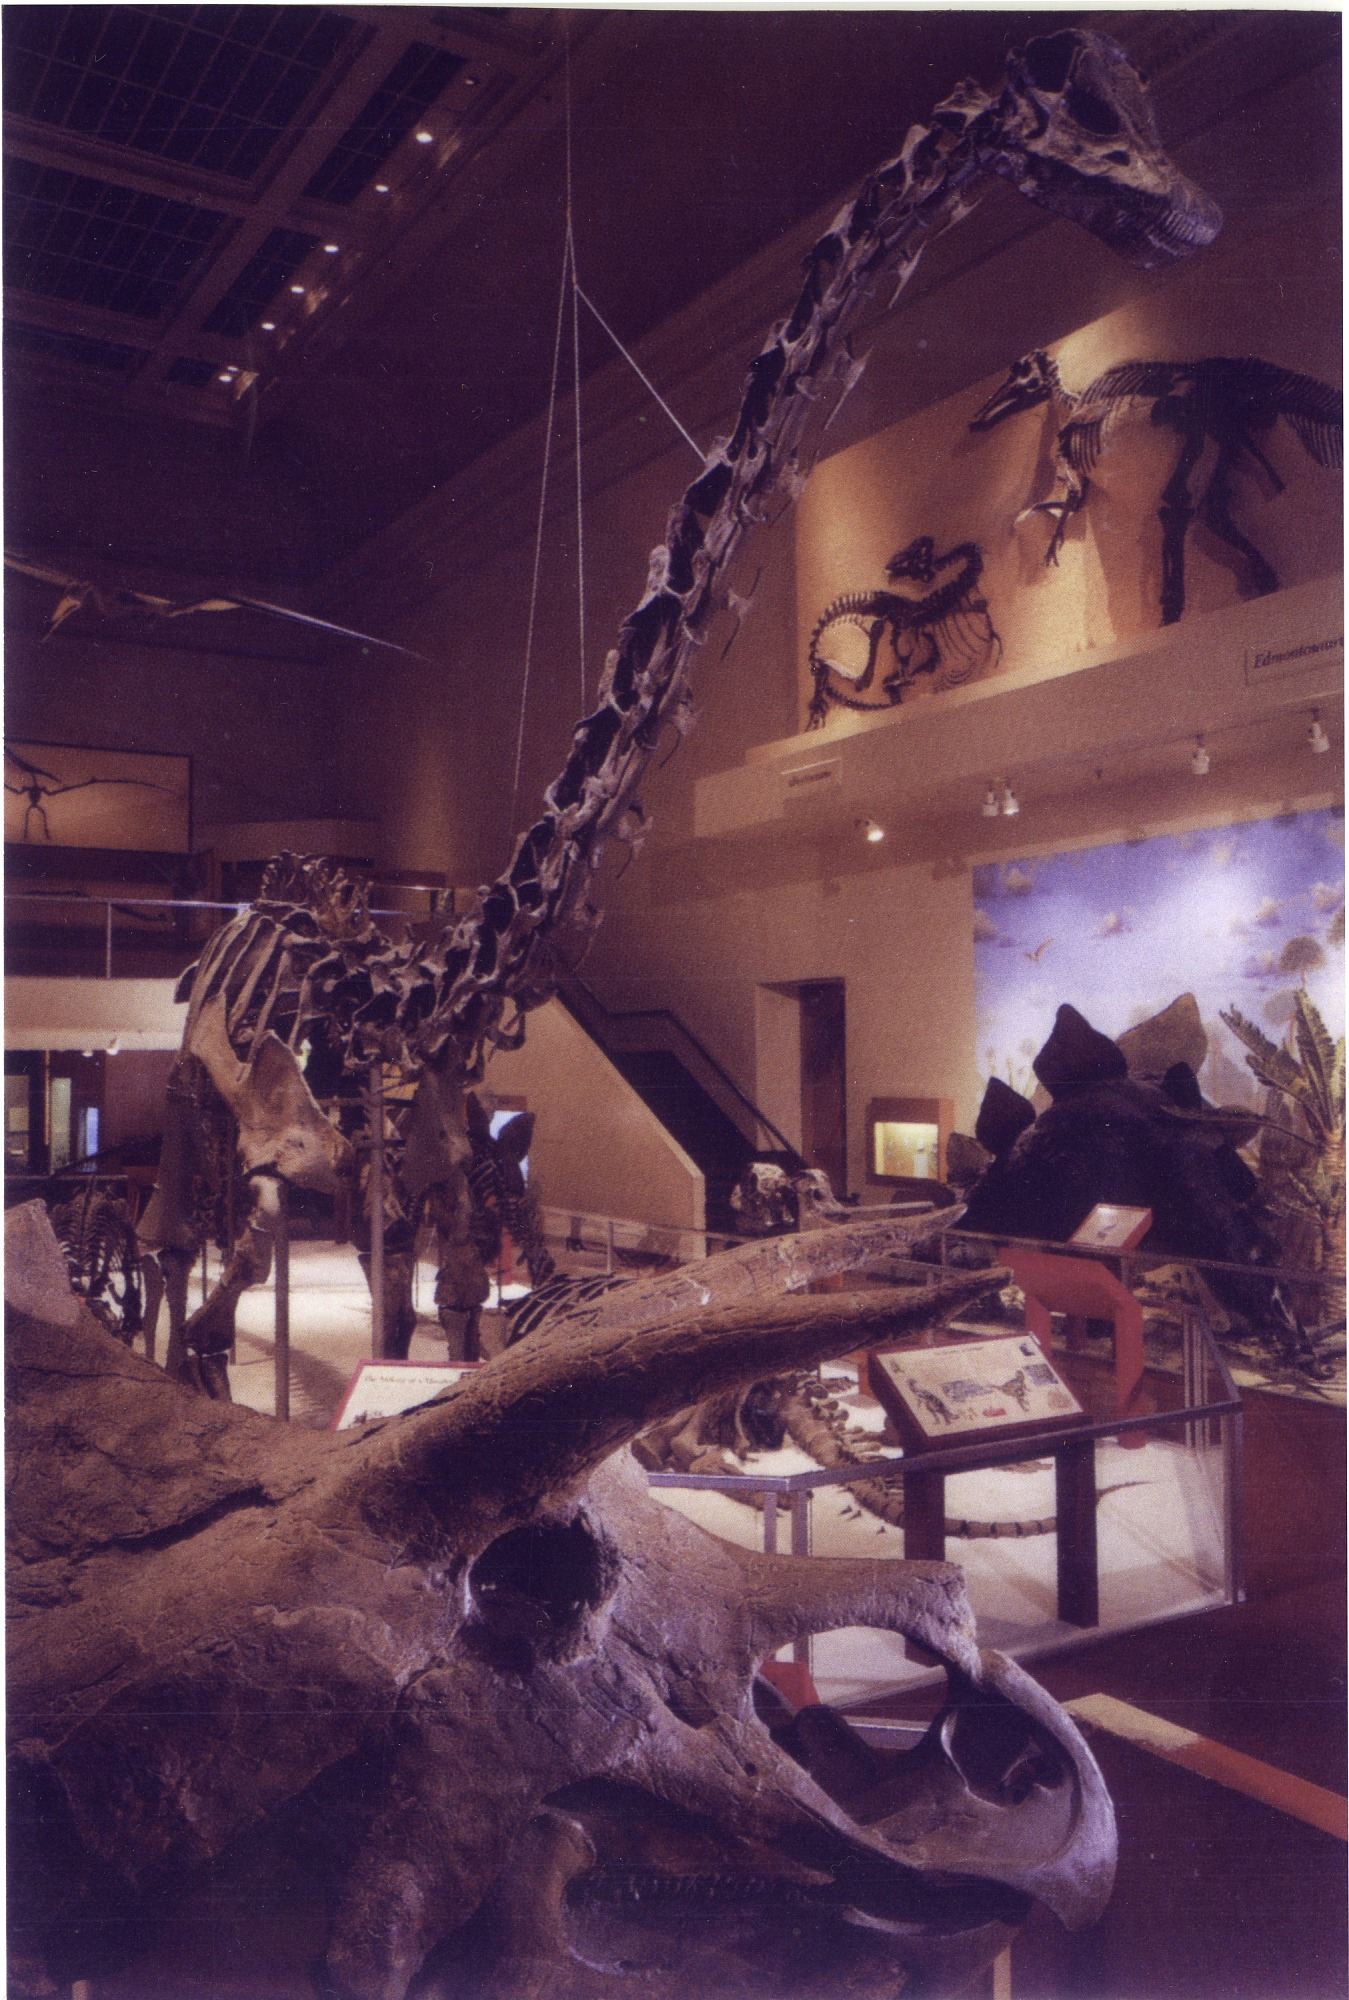 Dinosaur Hall, by Unknown, c. 1990, Smithsonian Archives - History Div, SIA2013-01061.